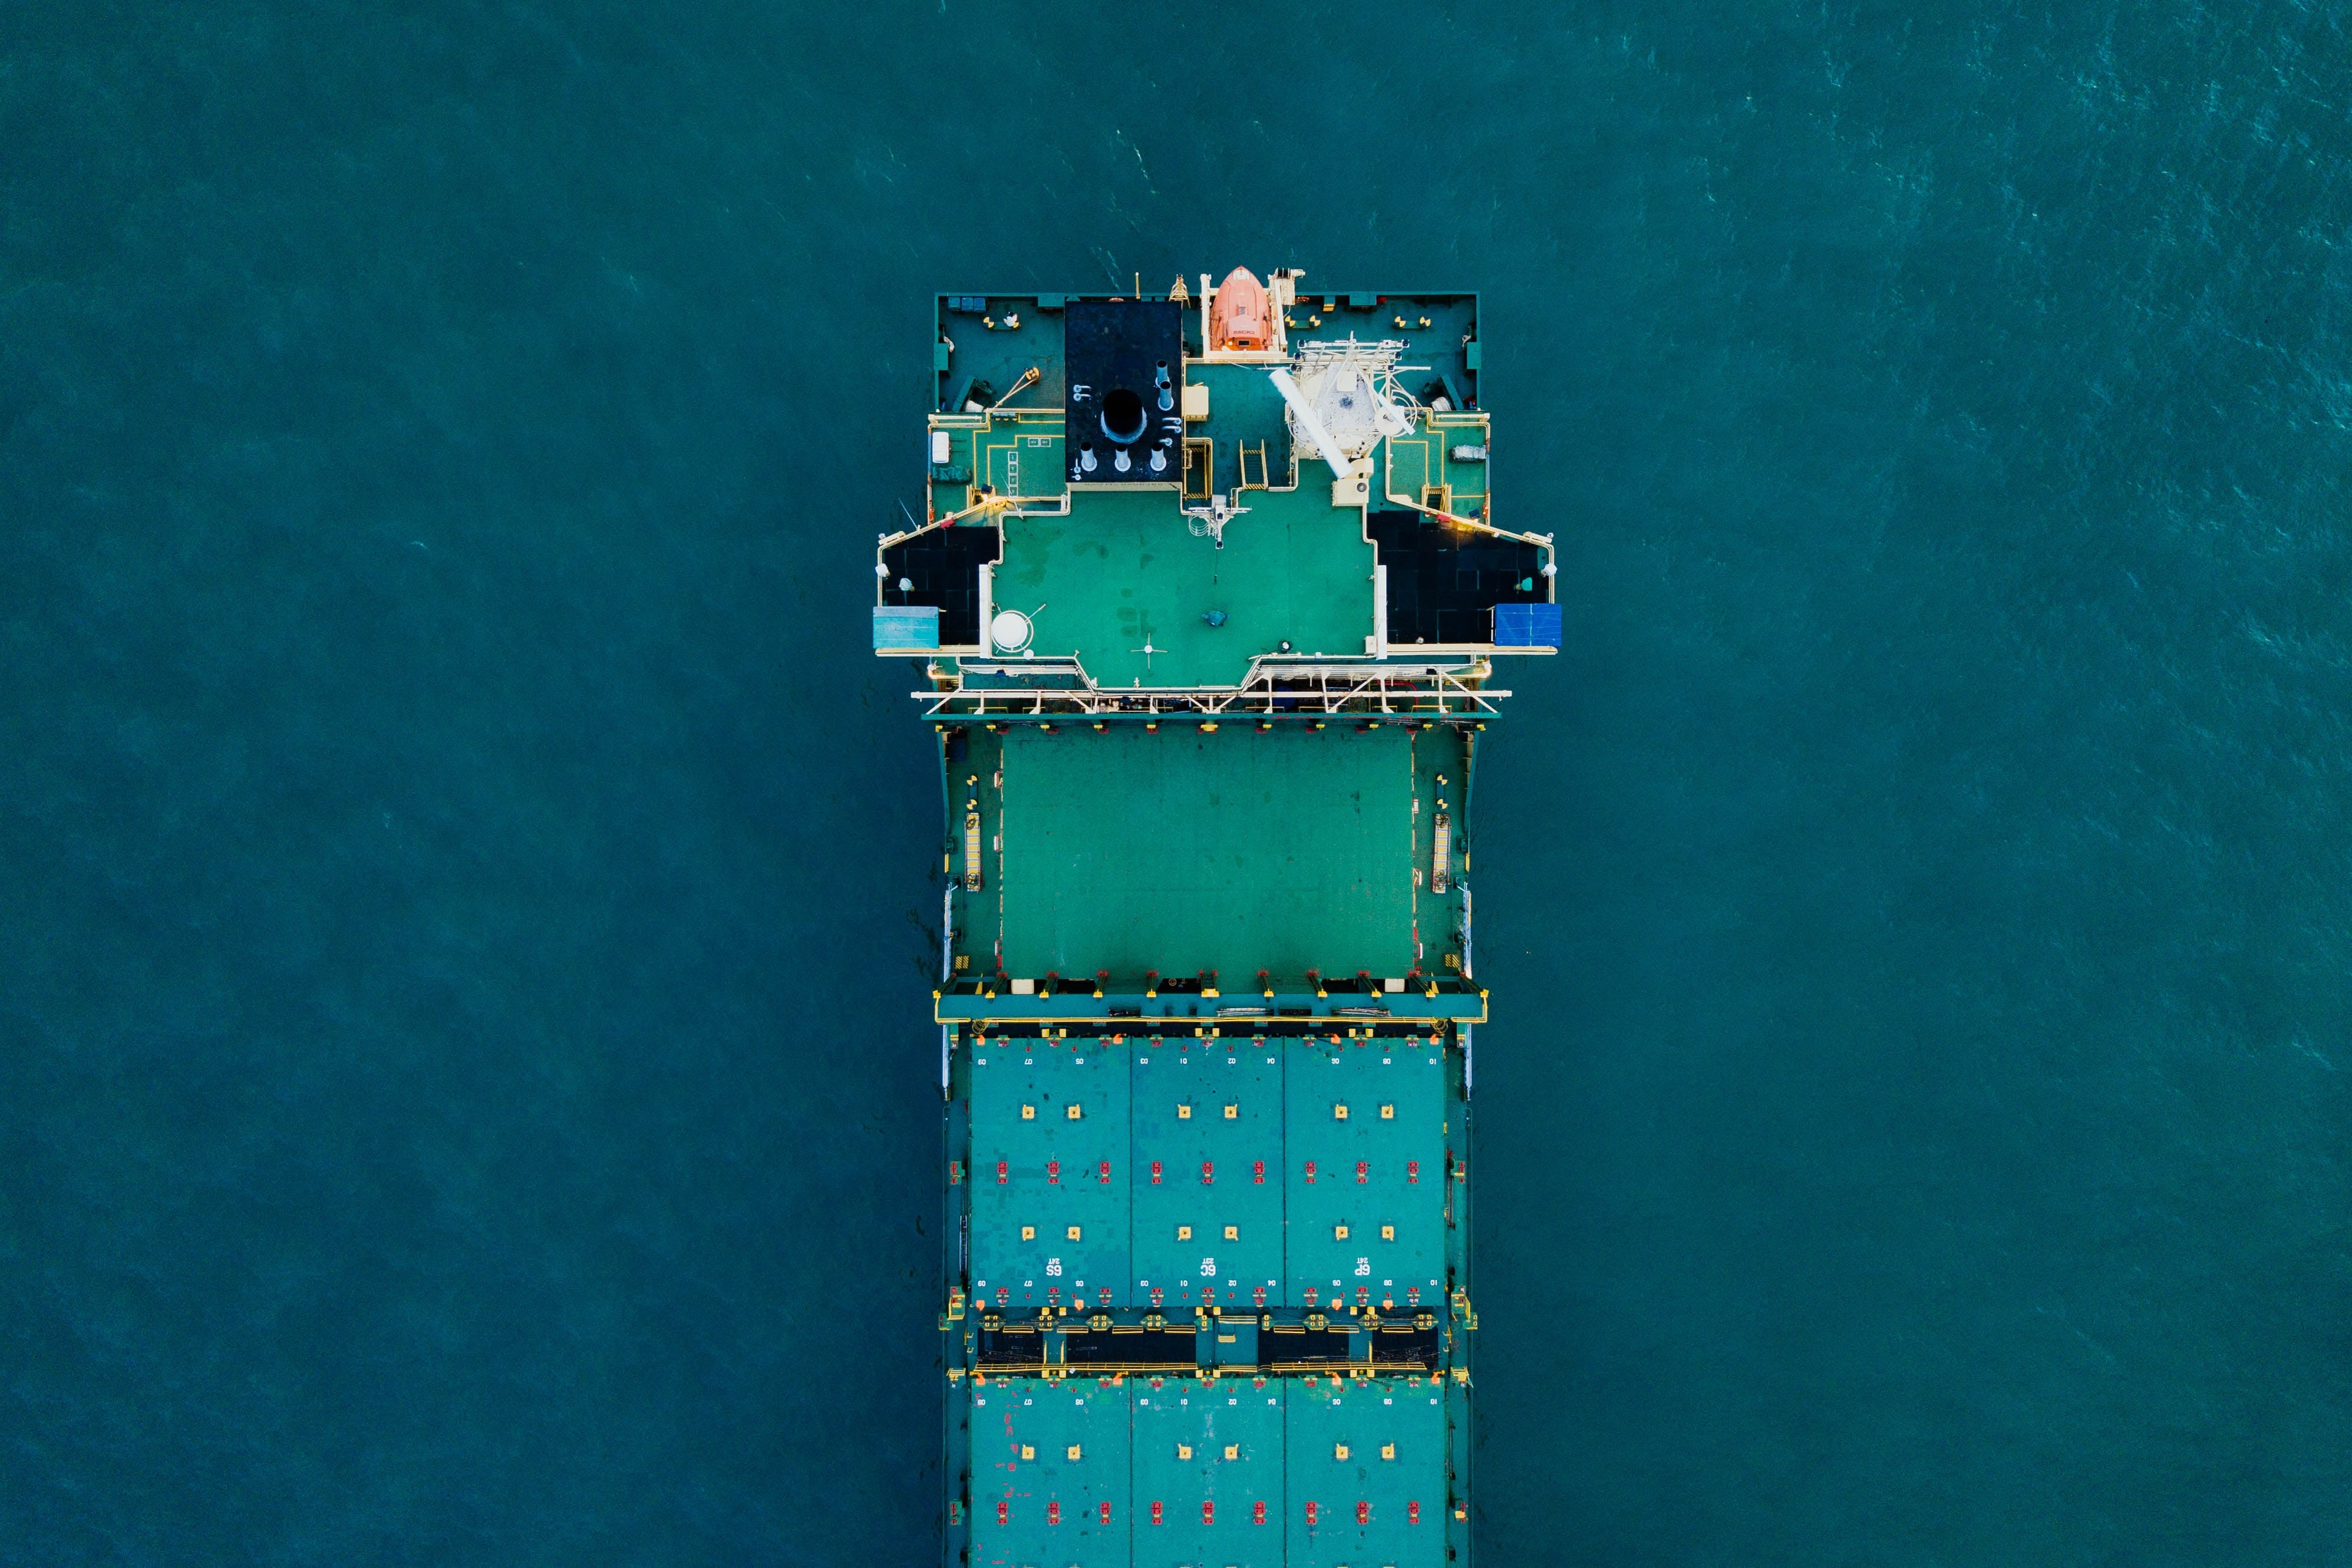 Cargo ship from overhead